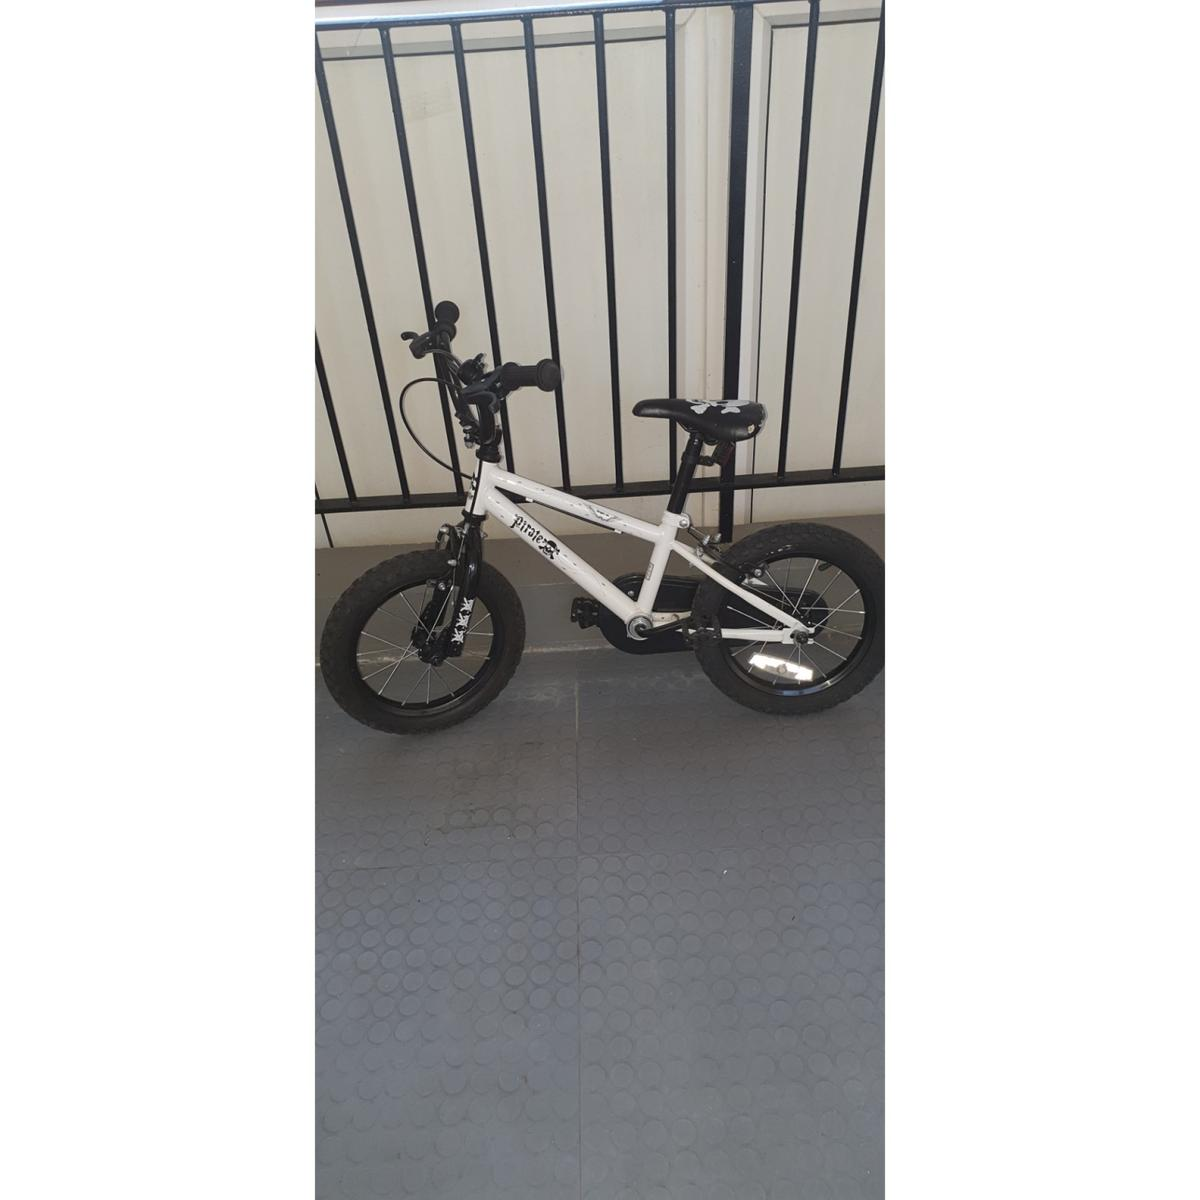 kids bike 14inch good condition needs to be gone asap  collection from new Addington  can drop off locally for £5